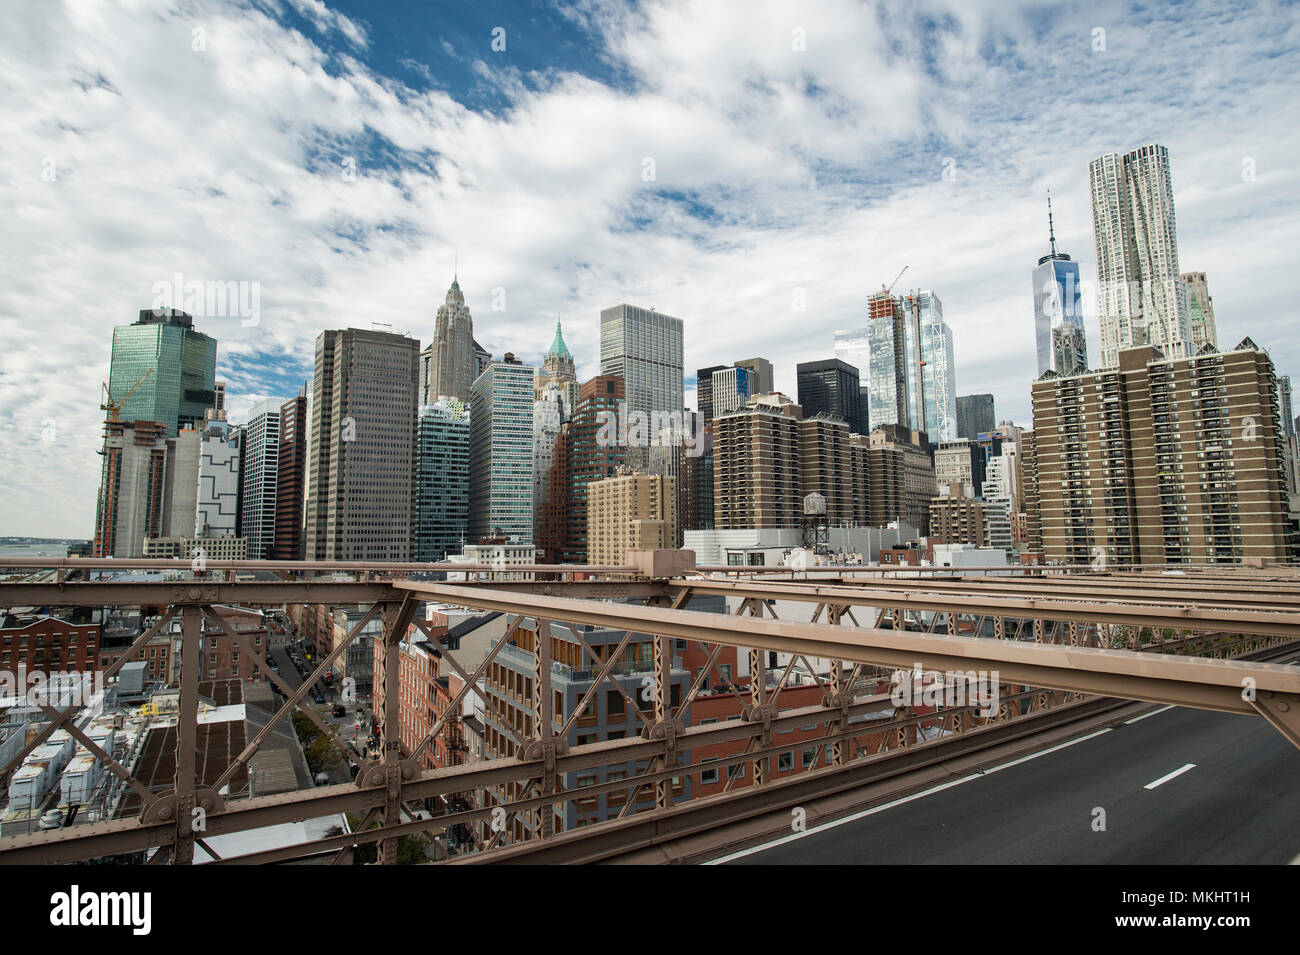 Manhattan skyline seen from the beautiful Brooklyn bridge. Cloudy day in New York City, USA. - Stock Image